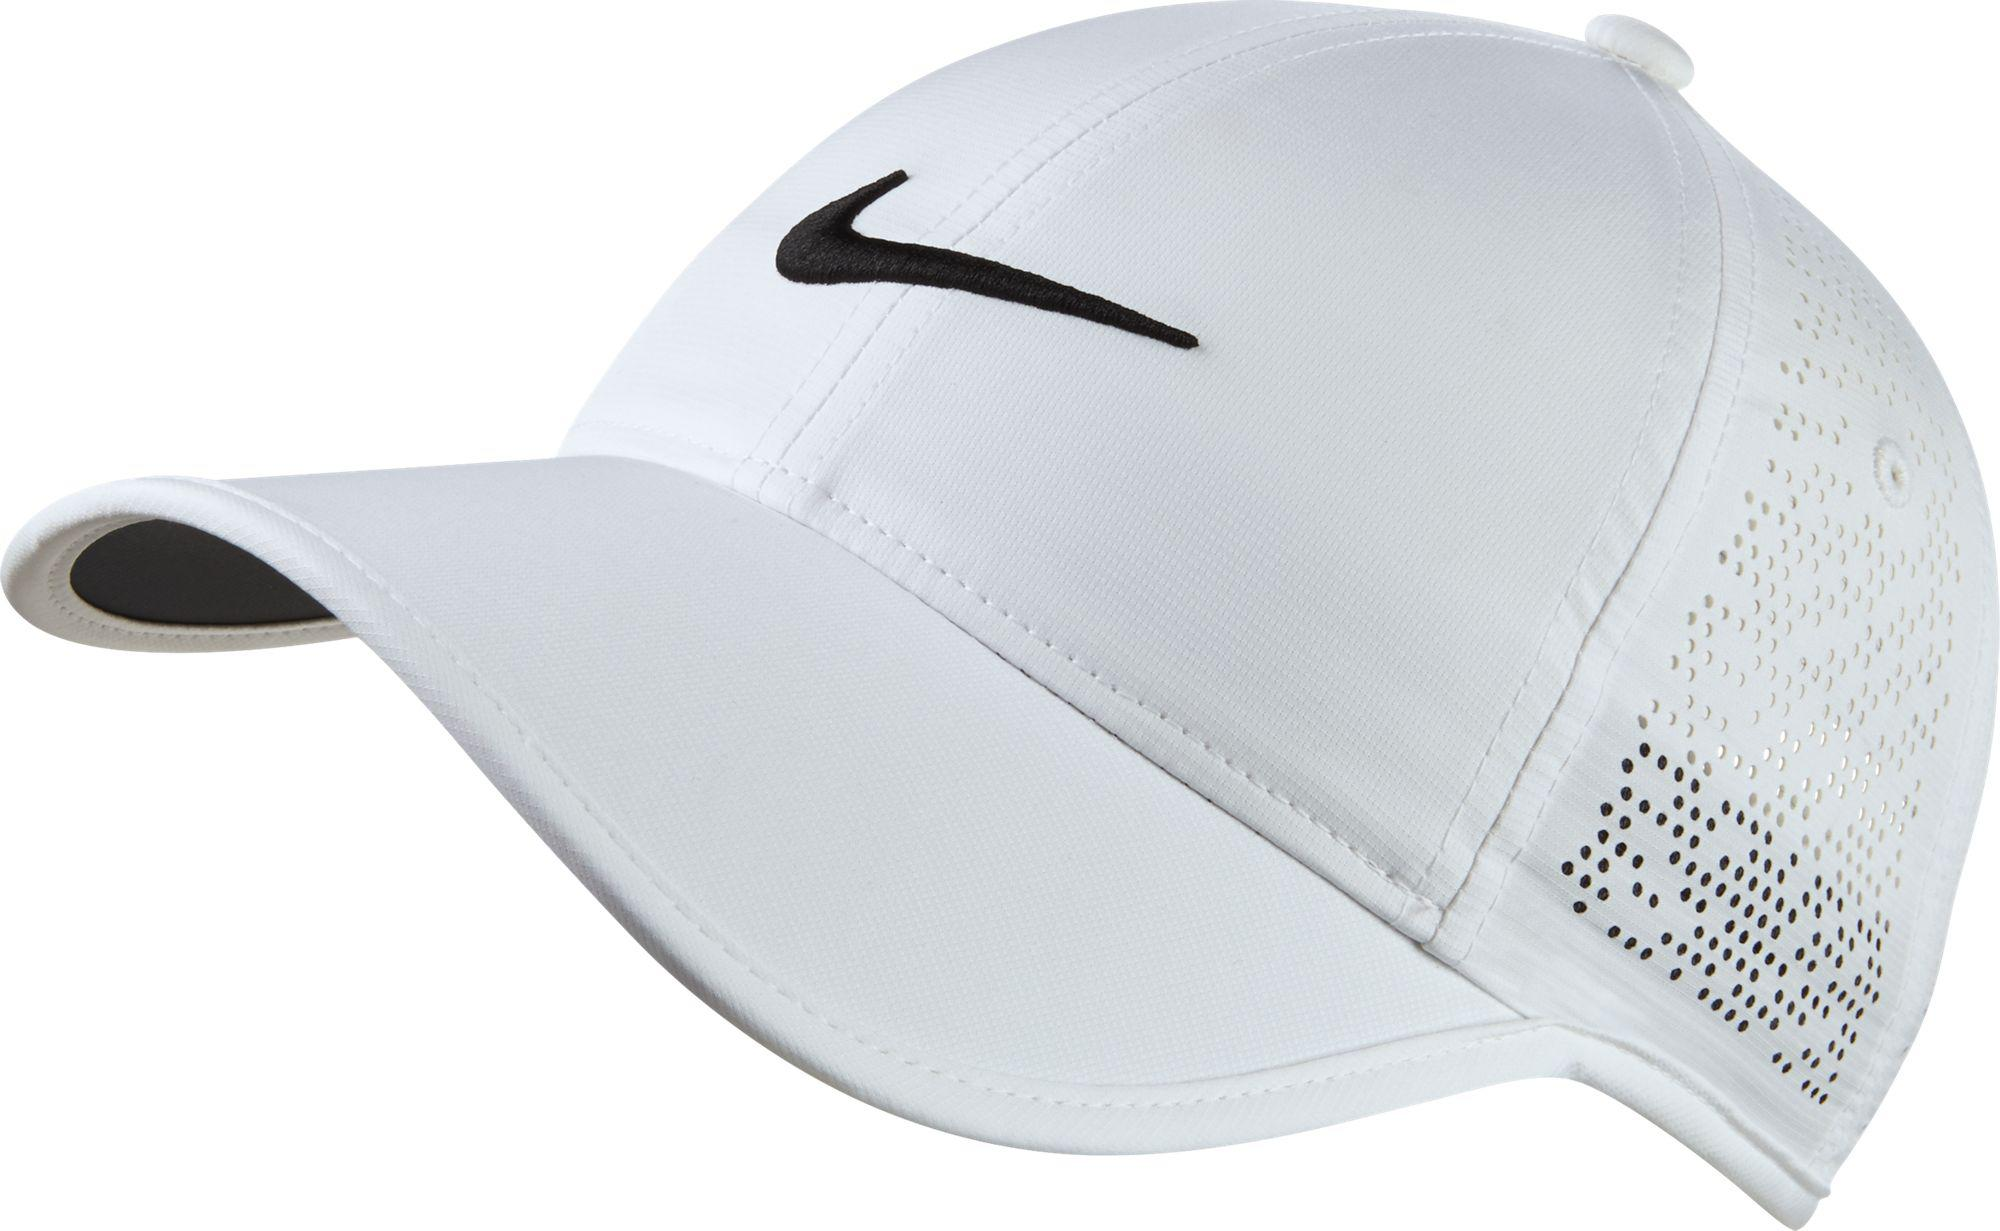 Lyst - Nike Perforated Golf Hat in White 676f650d4375